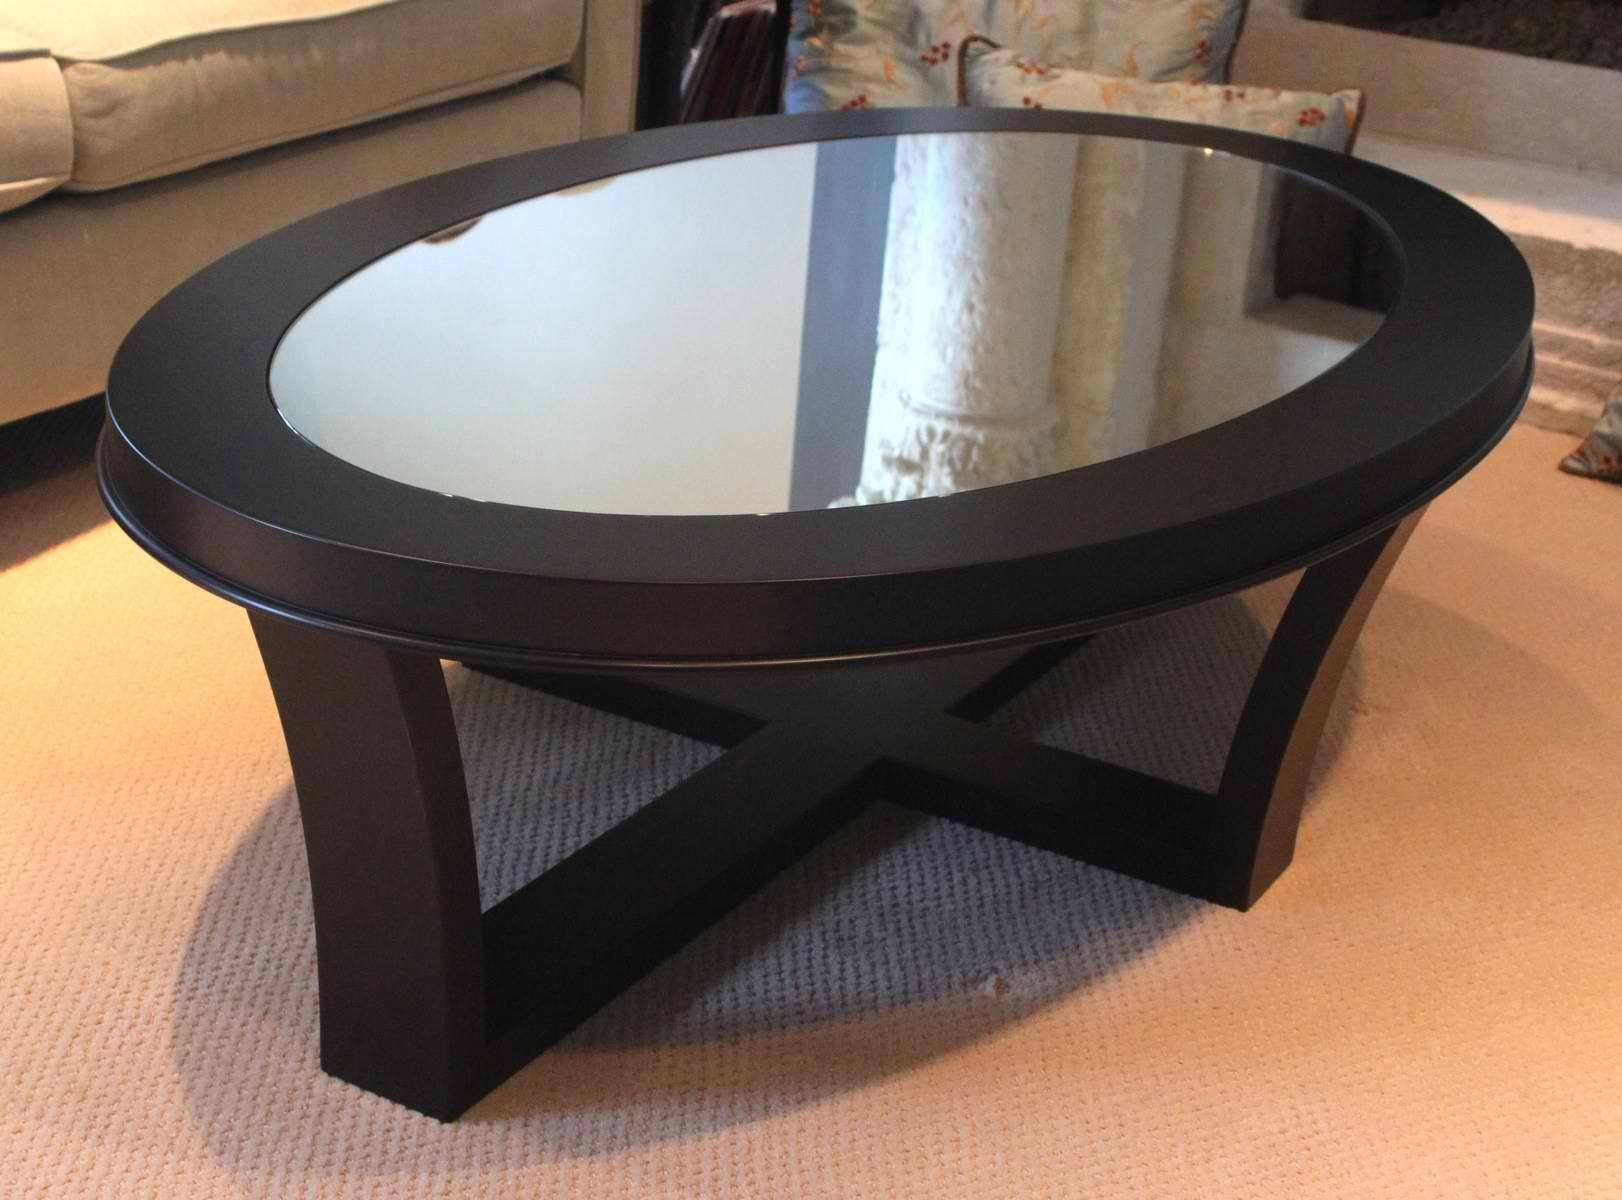 Coffee Tables Ideas: Awesome Black Oval Coffee Table Set Oval Wood inside Oval Wooden Coffee Tables (Image 7 of 30)